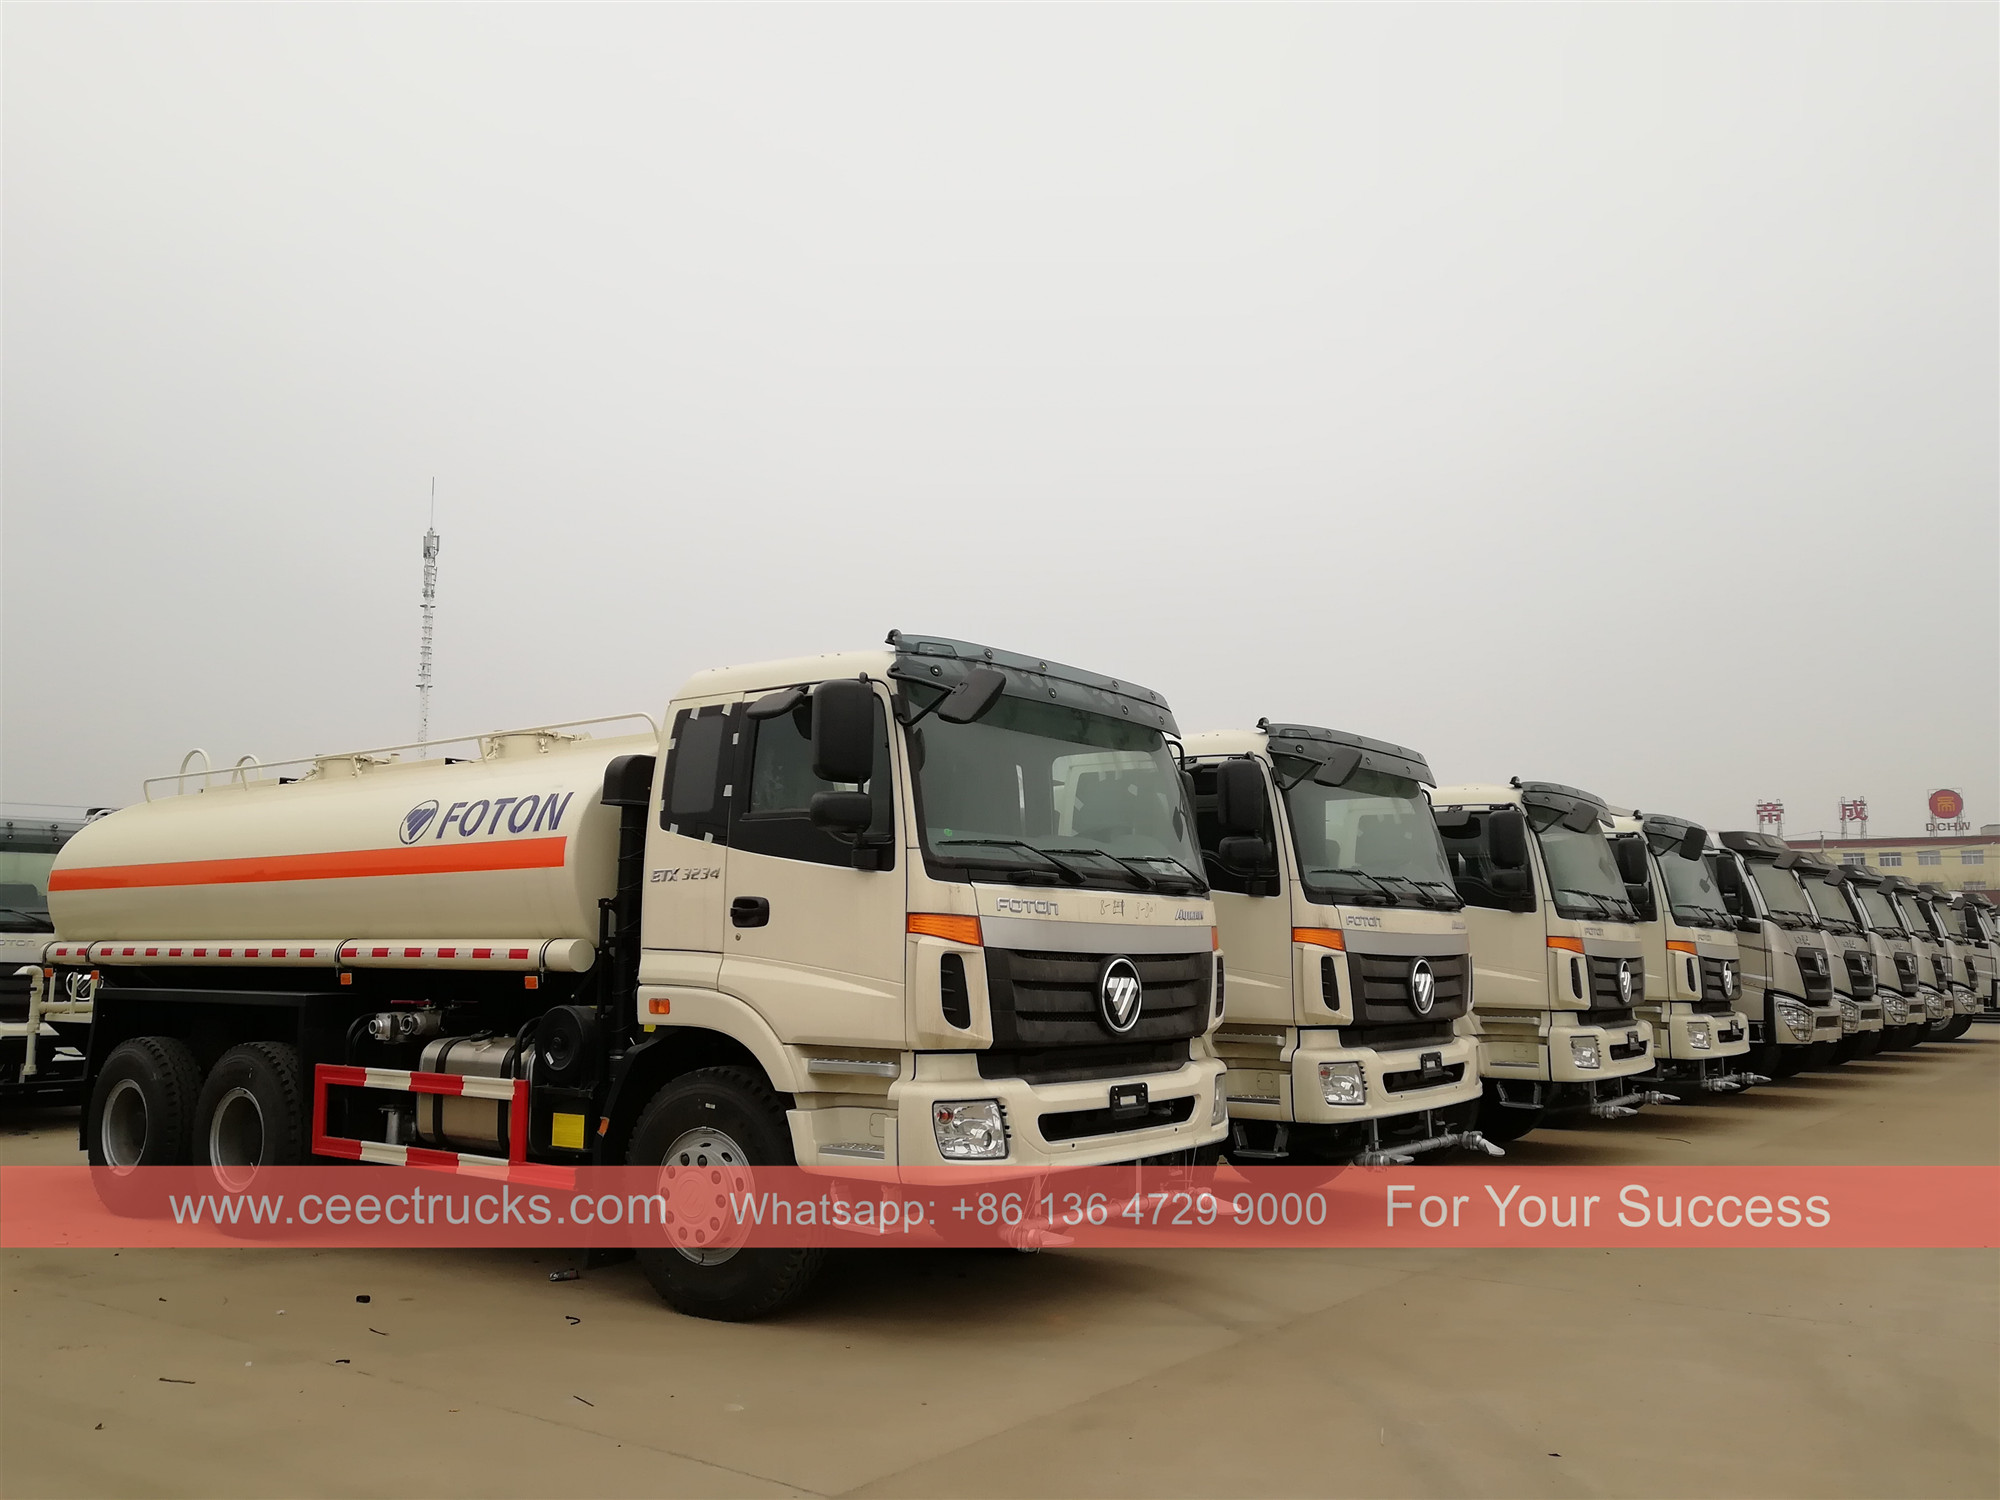 35 units FOTON Water tanker trucks were delivered to Africa